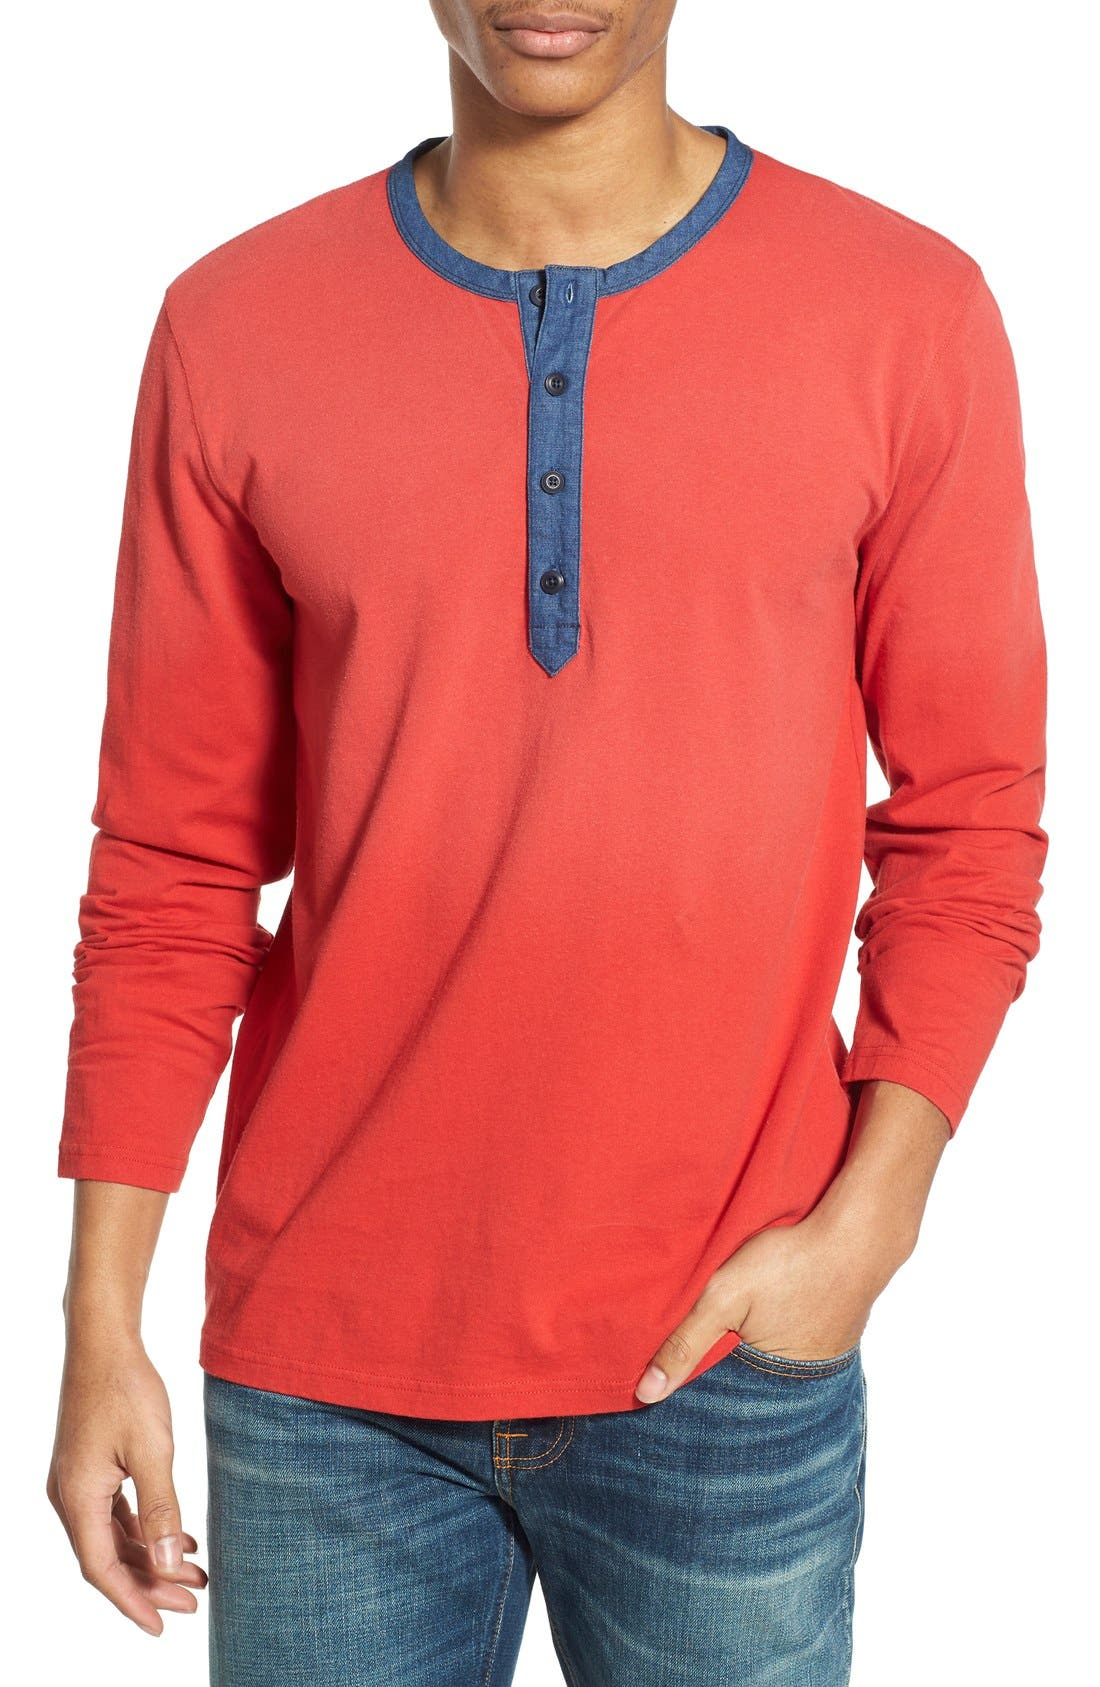 Alternate Image 1 Selected - Lucky Brand 'Fashion' Long Sleeve Henley